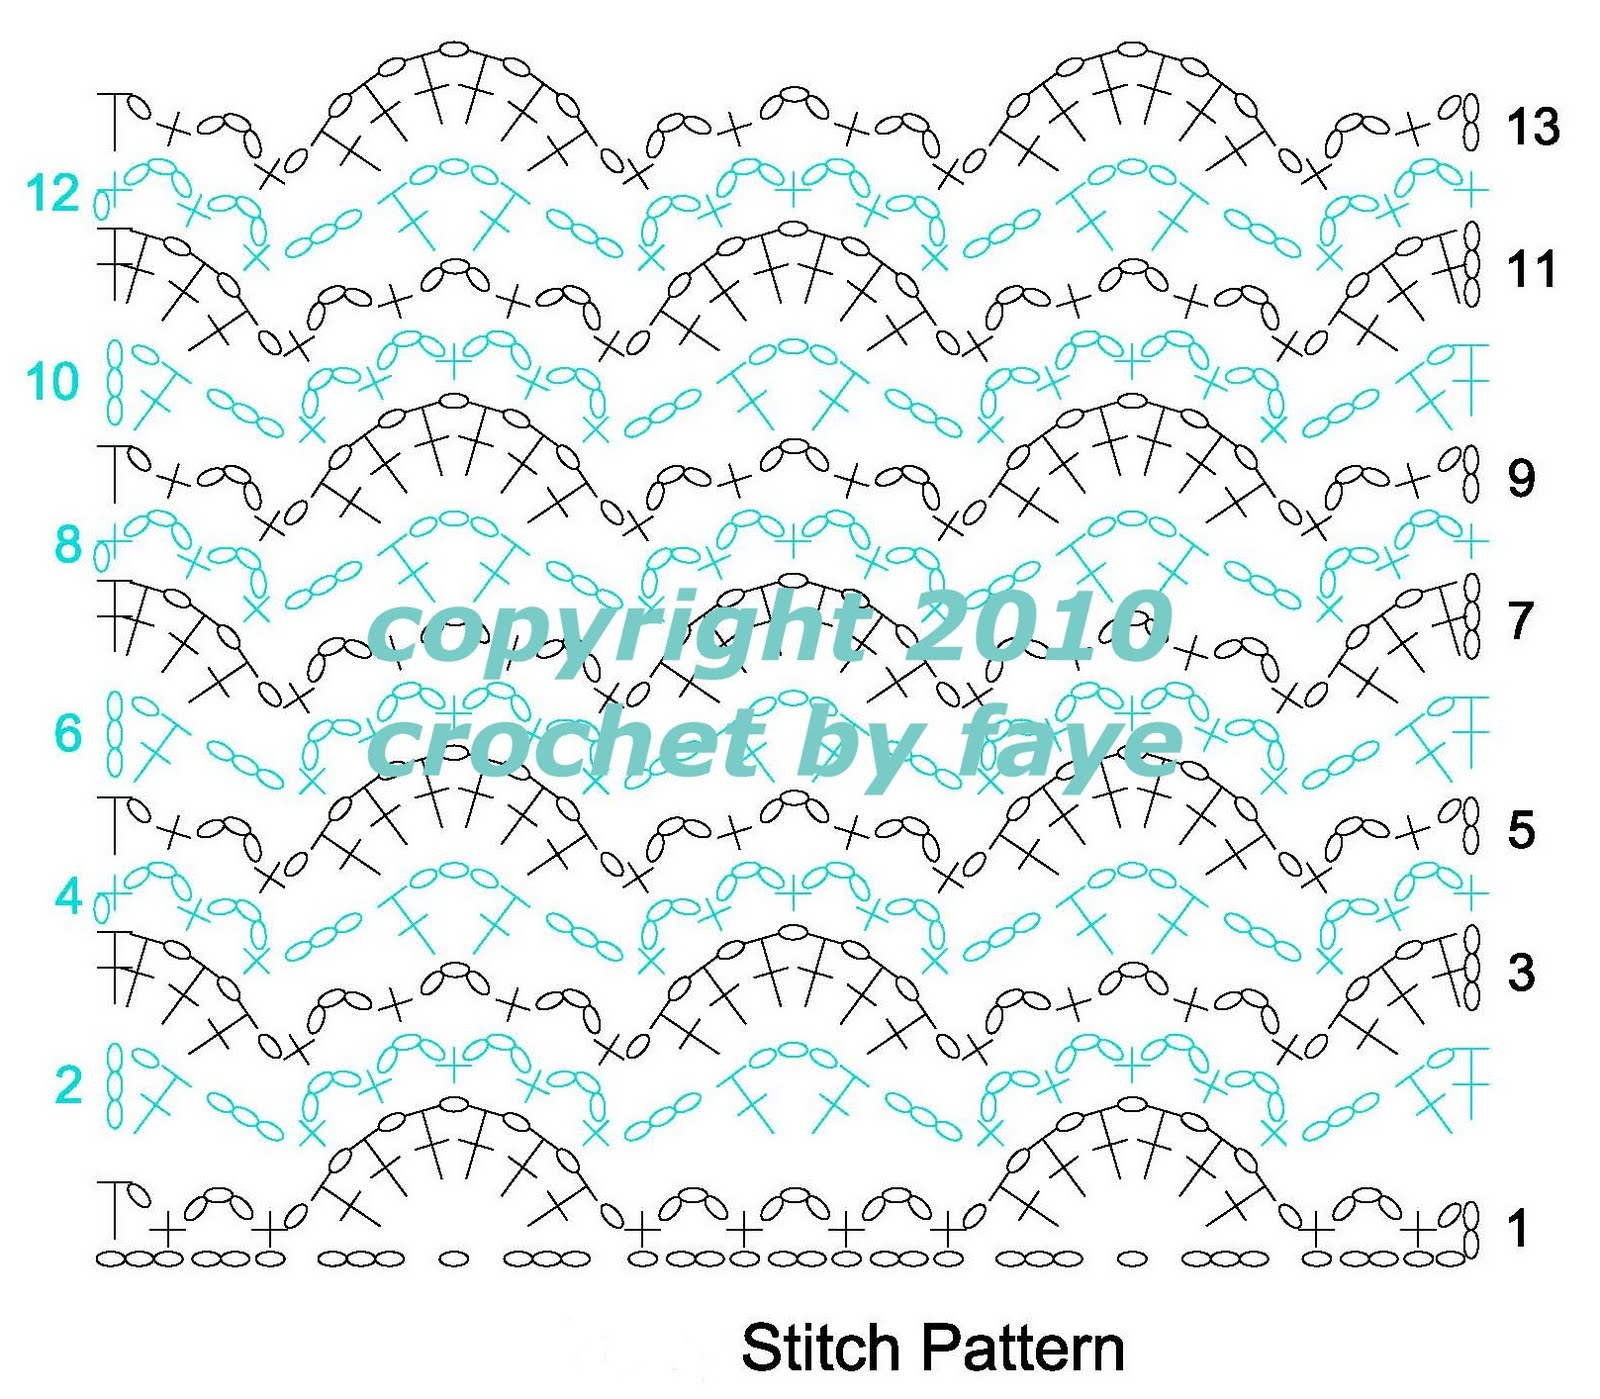 Convert To Crochet Pattern Diagram Patterns With